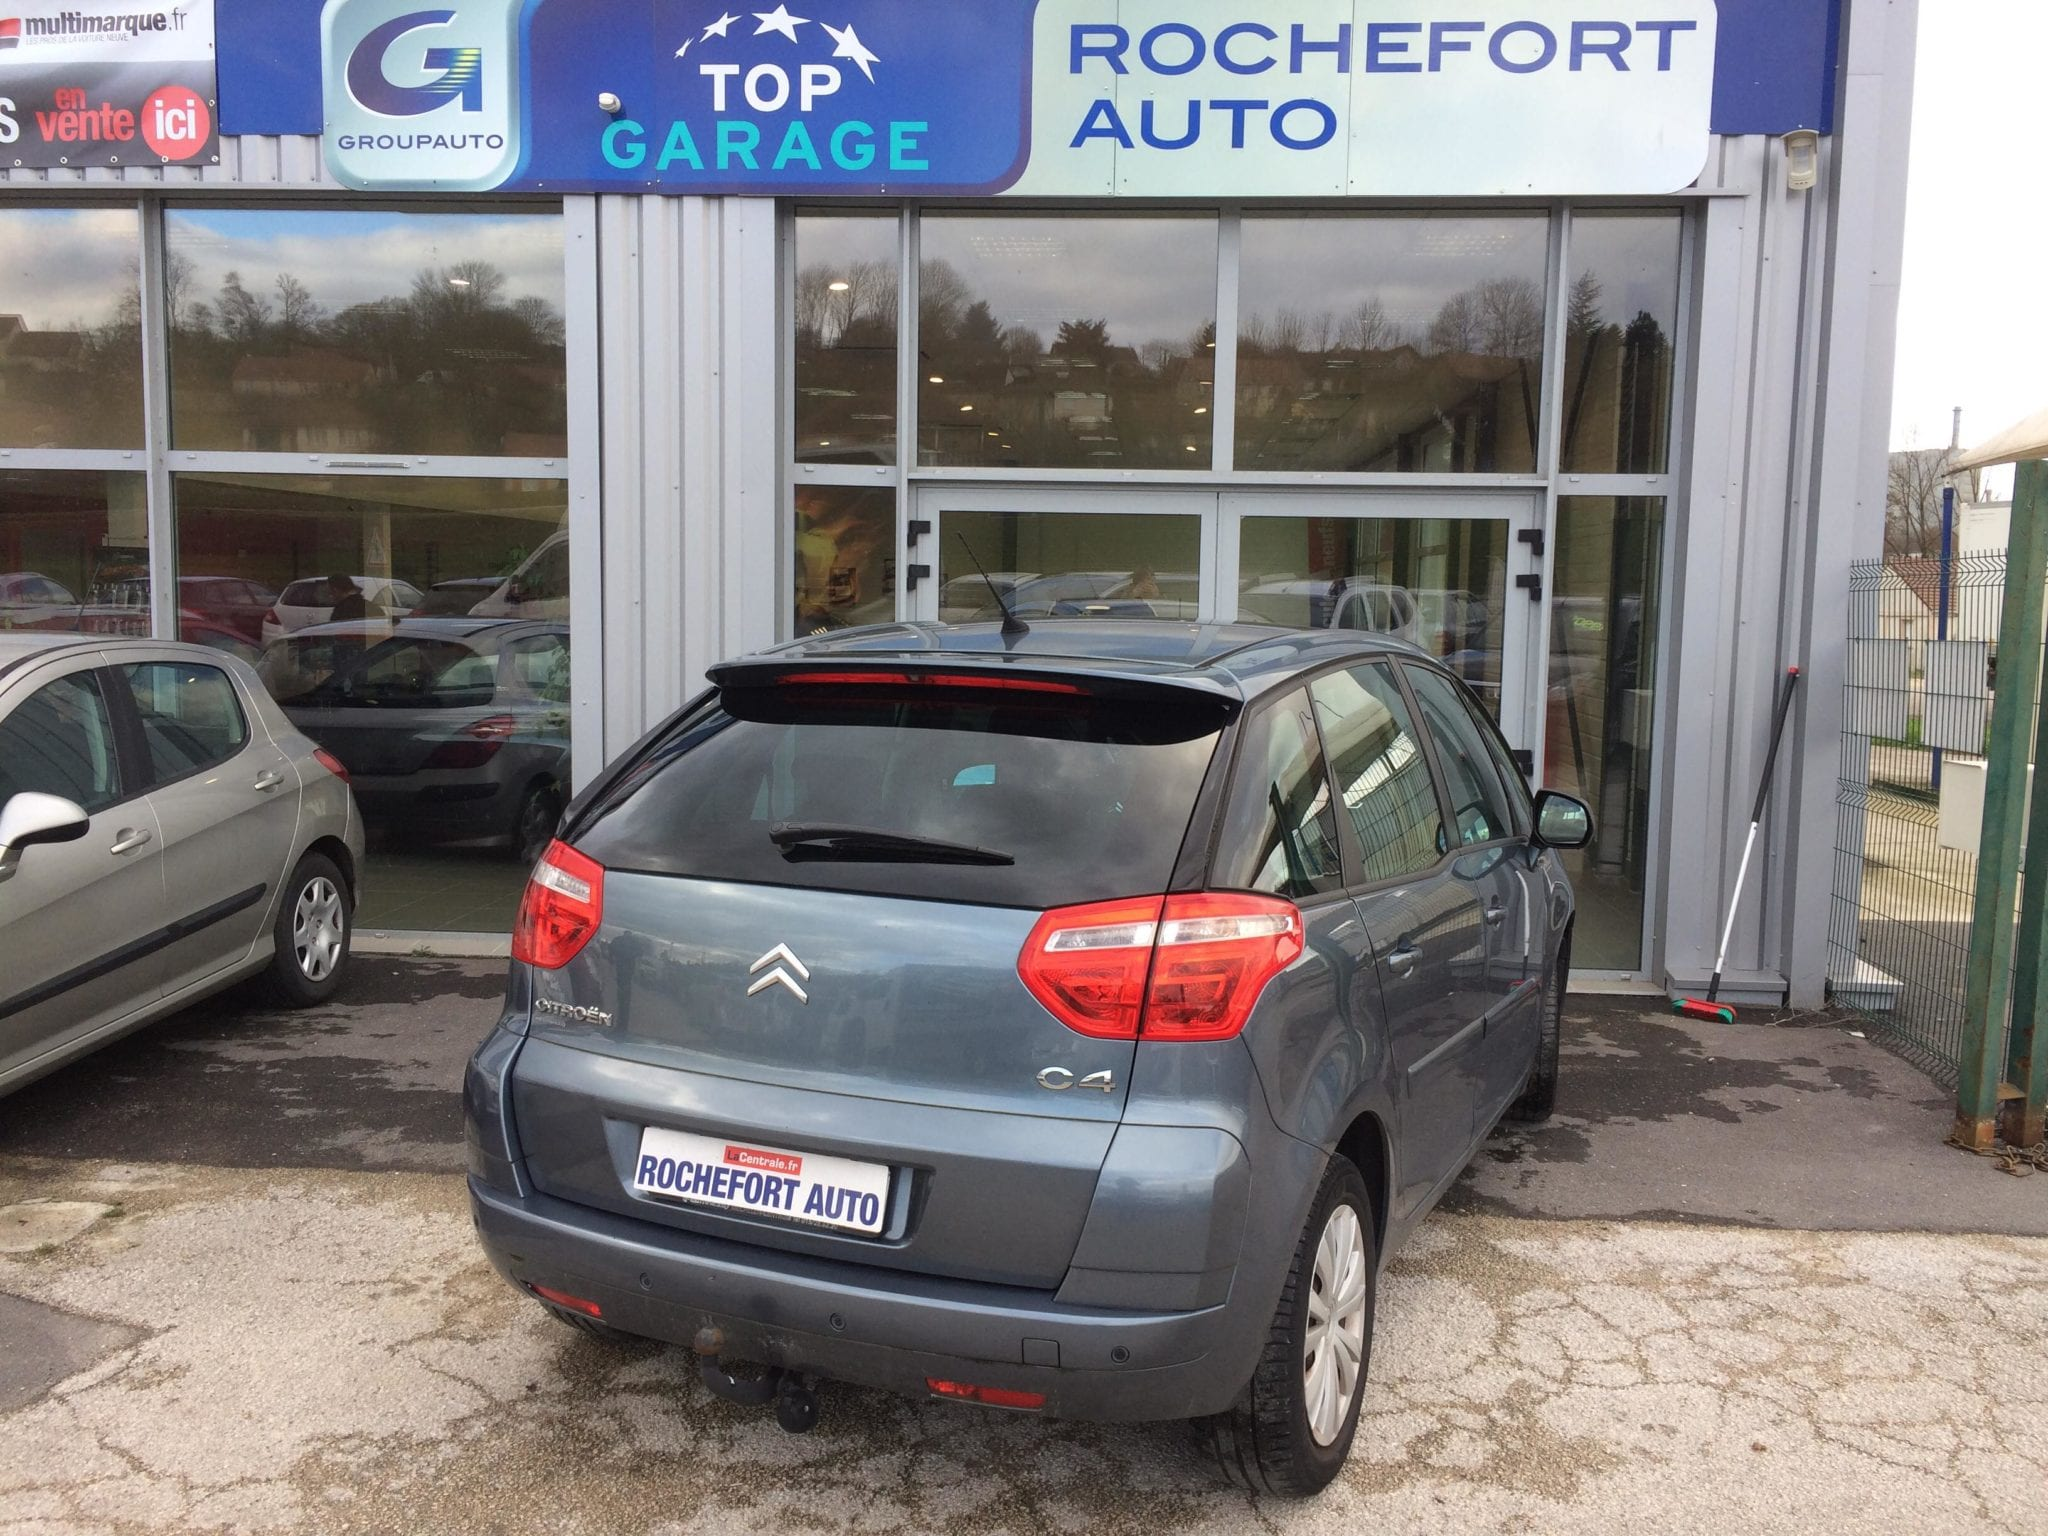 CITROEN C4 PICASSO 1.6 HDI 110 PACK AMBIANCE - Image 3